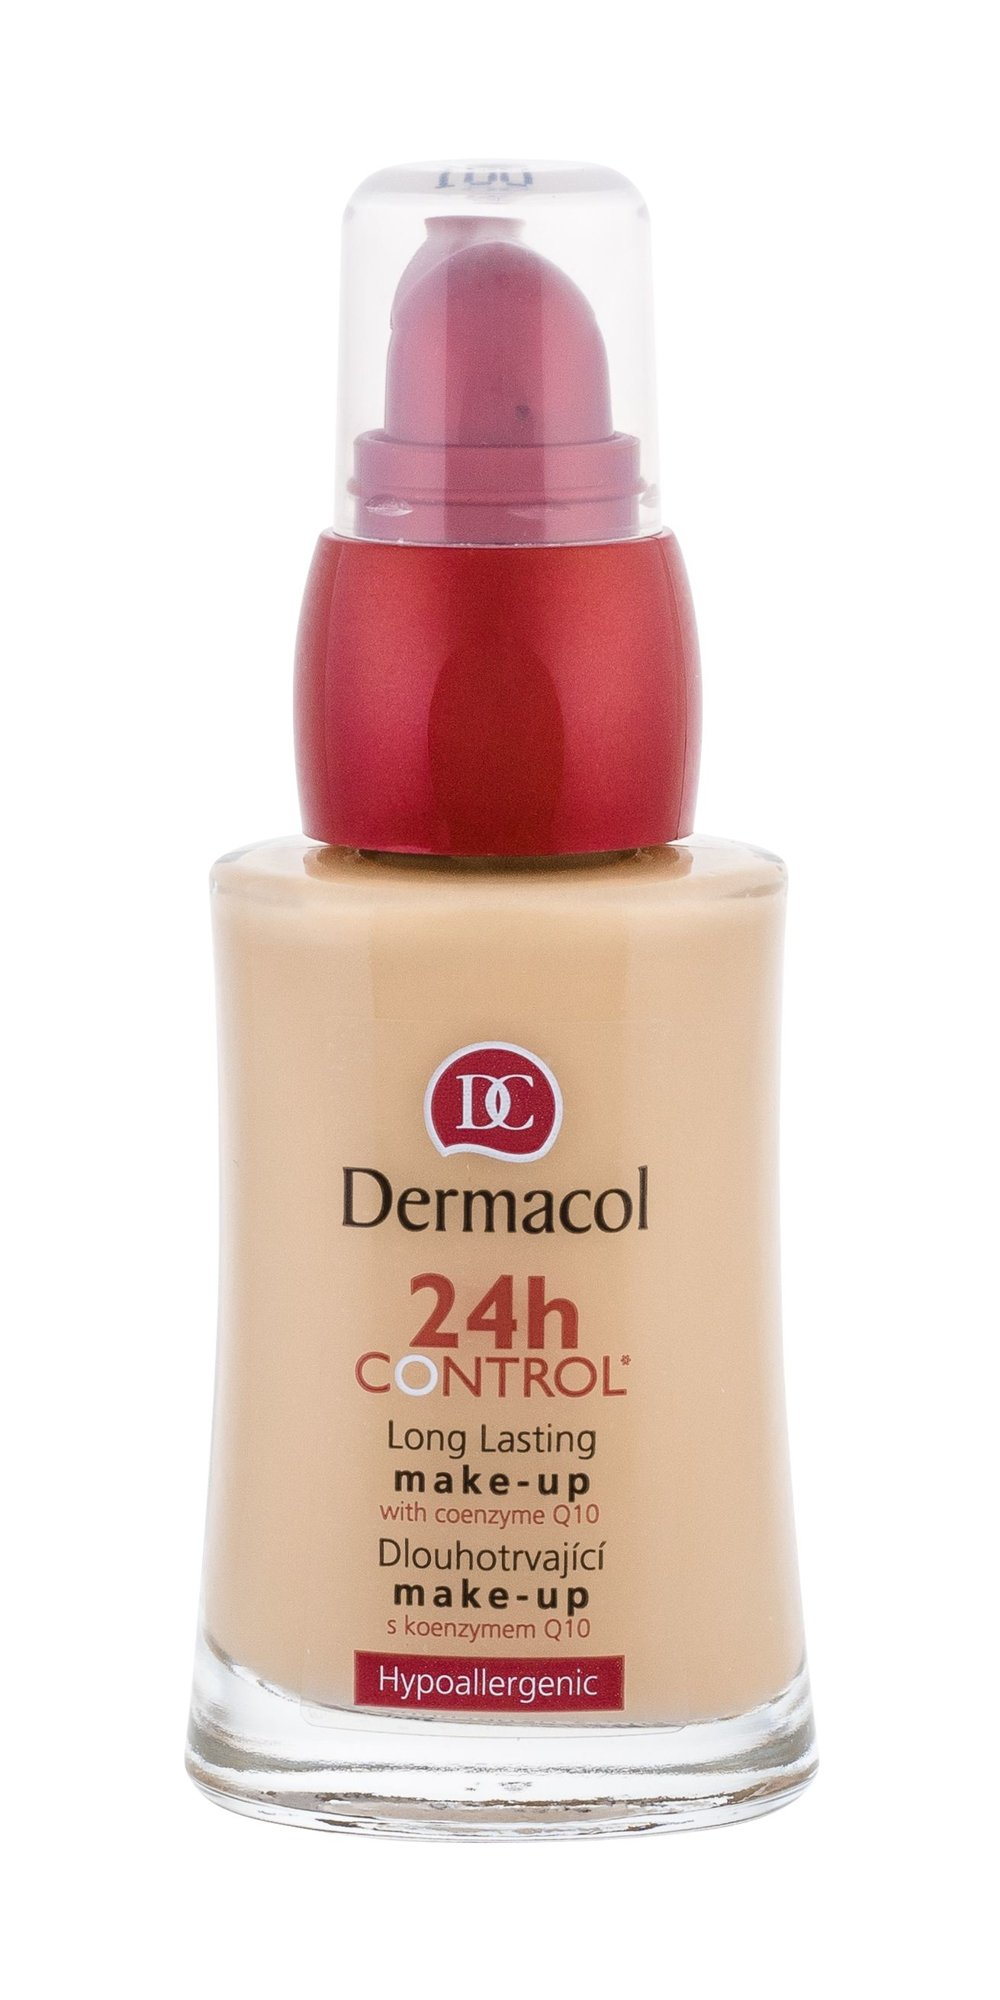 Dermacol 24h Control Makeup 30ml 100